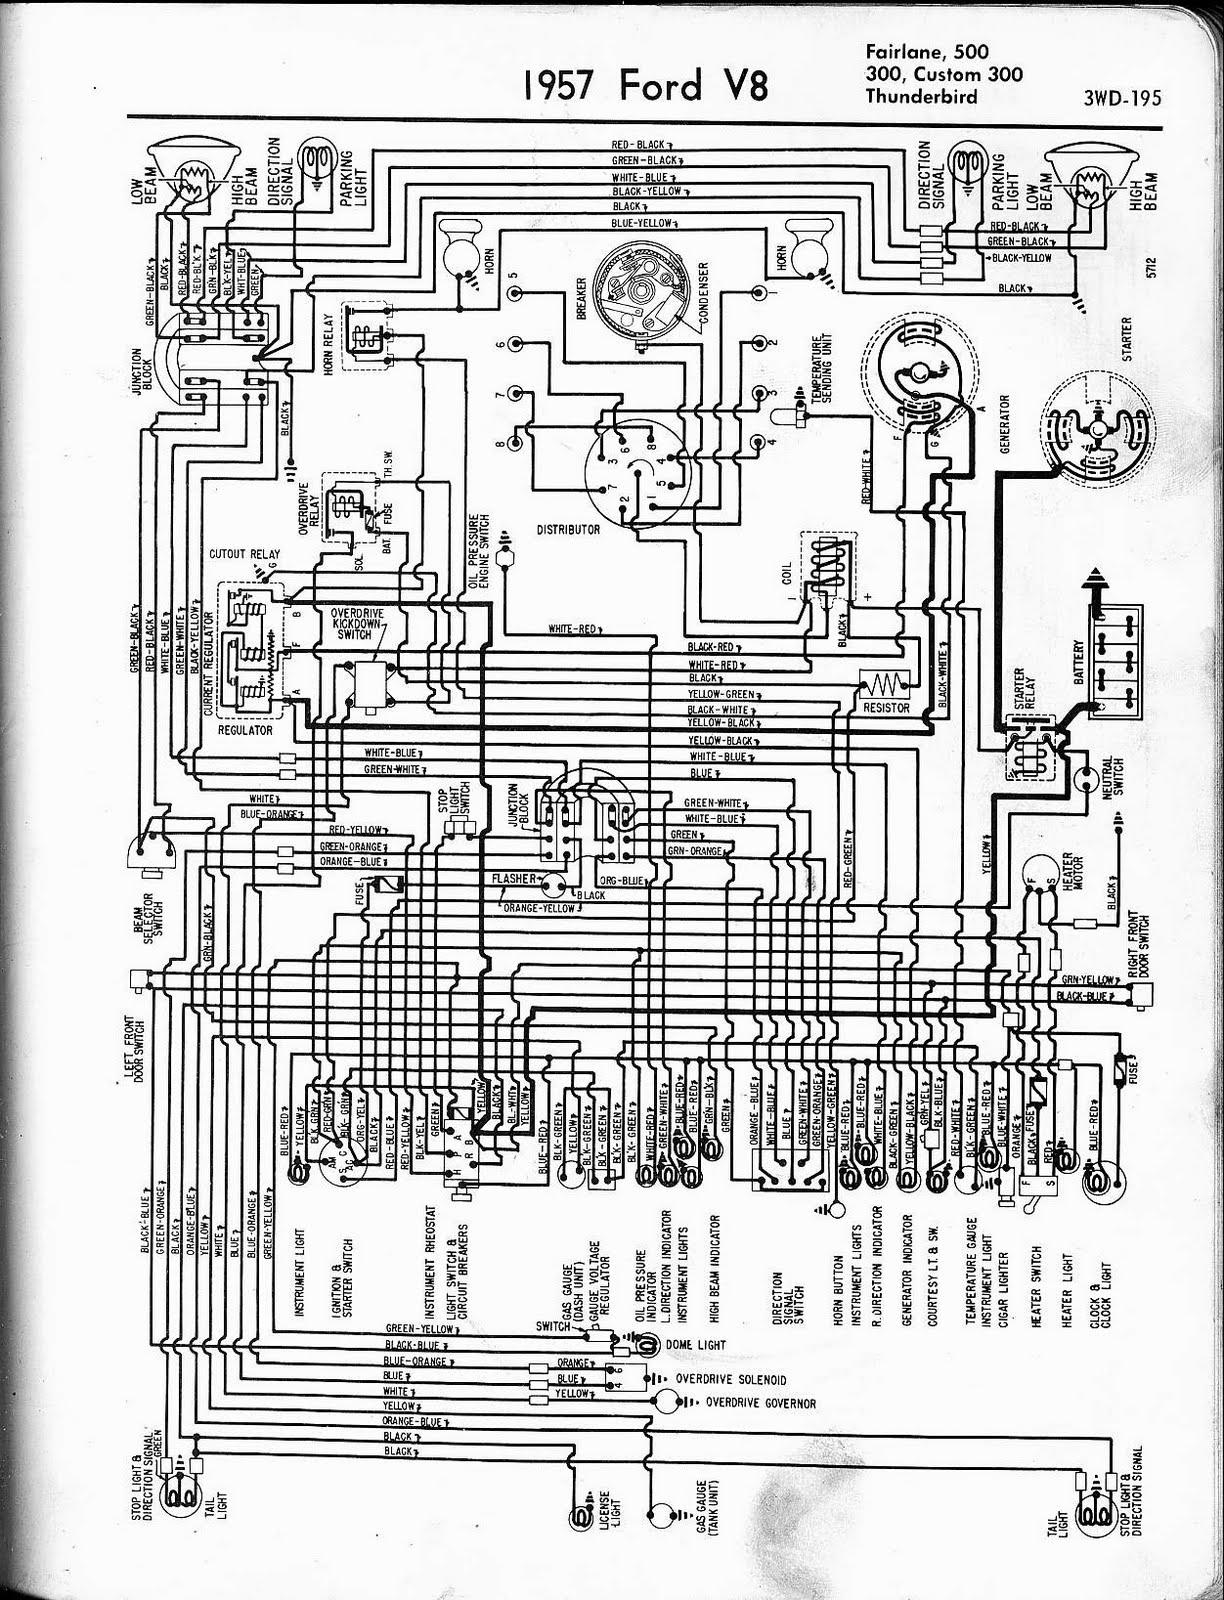 free auto wiring diagram 1957 ford v8 fairlane custom300 2006 Ford Crown  Victoria Fuse Box Diagram